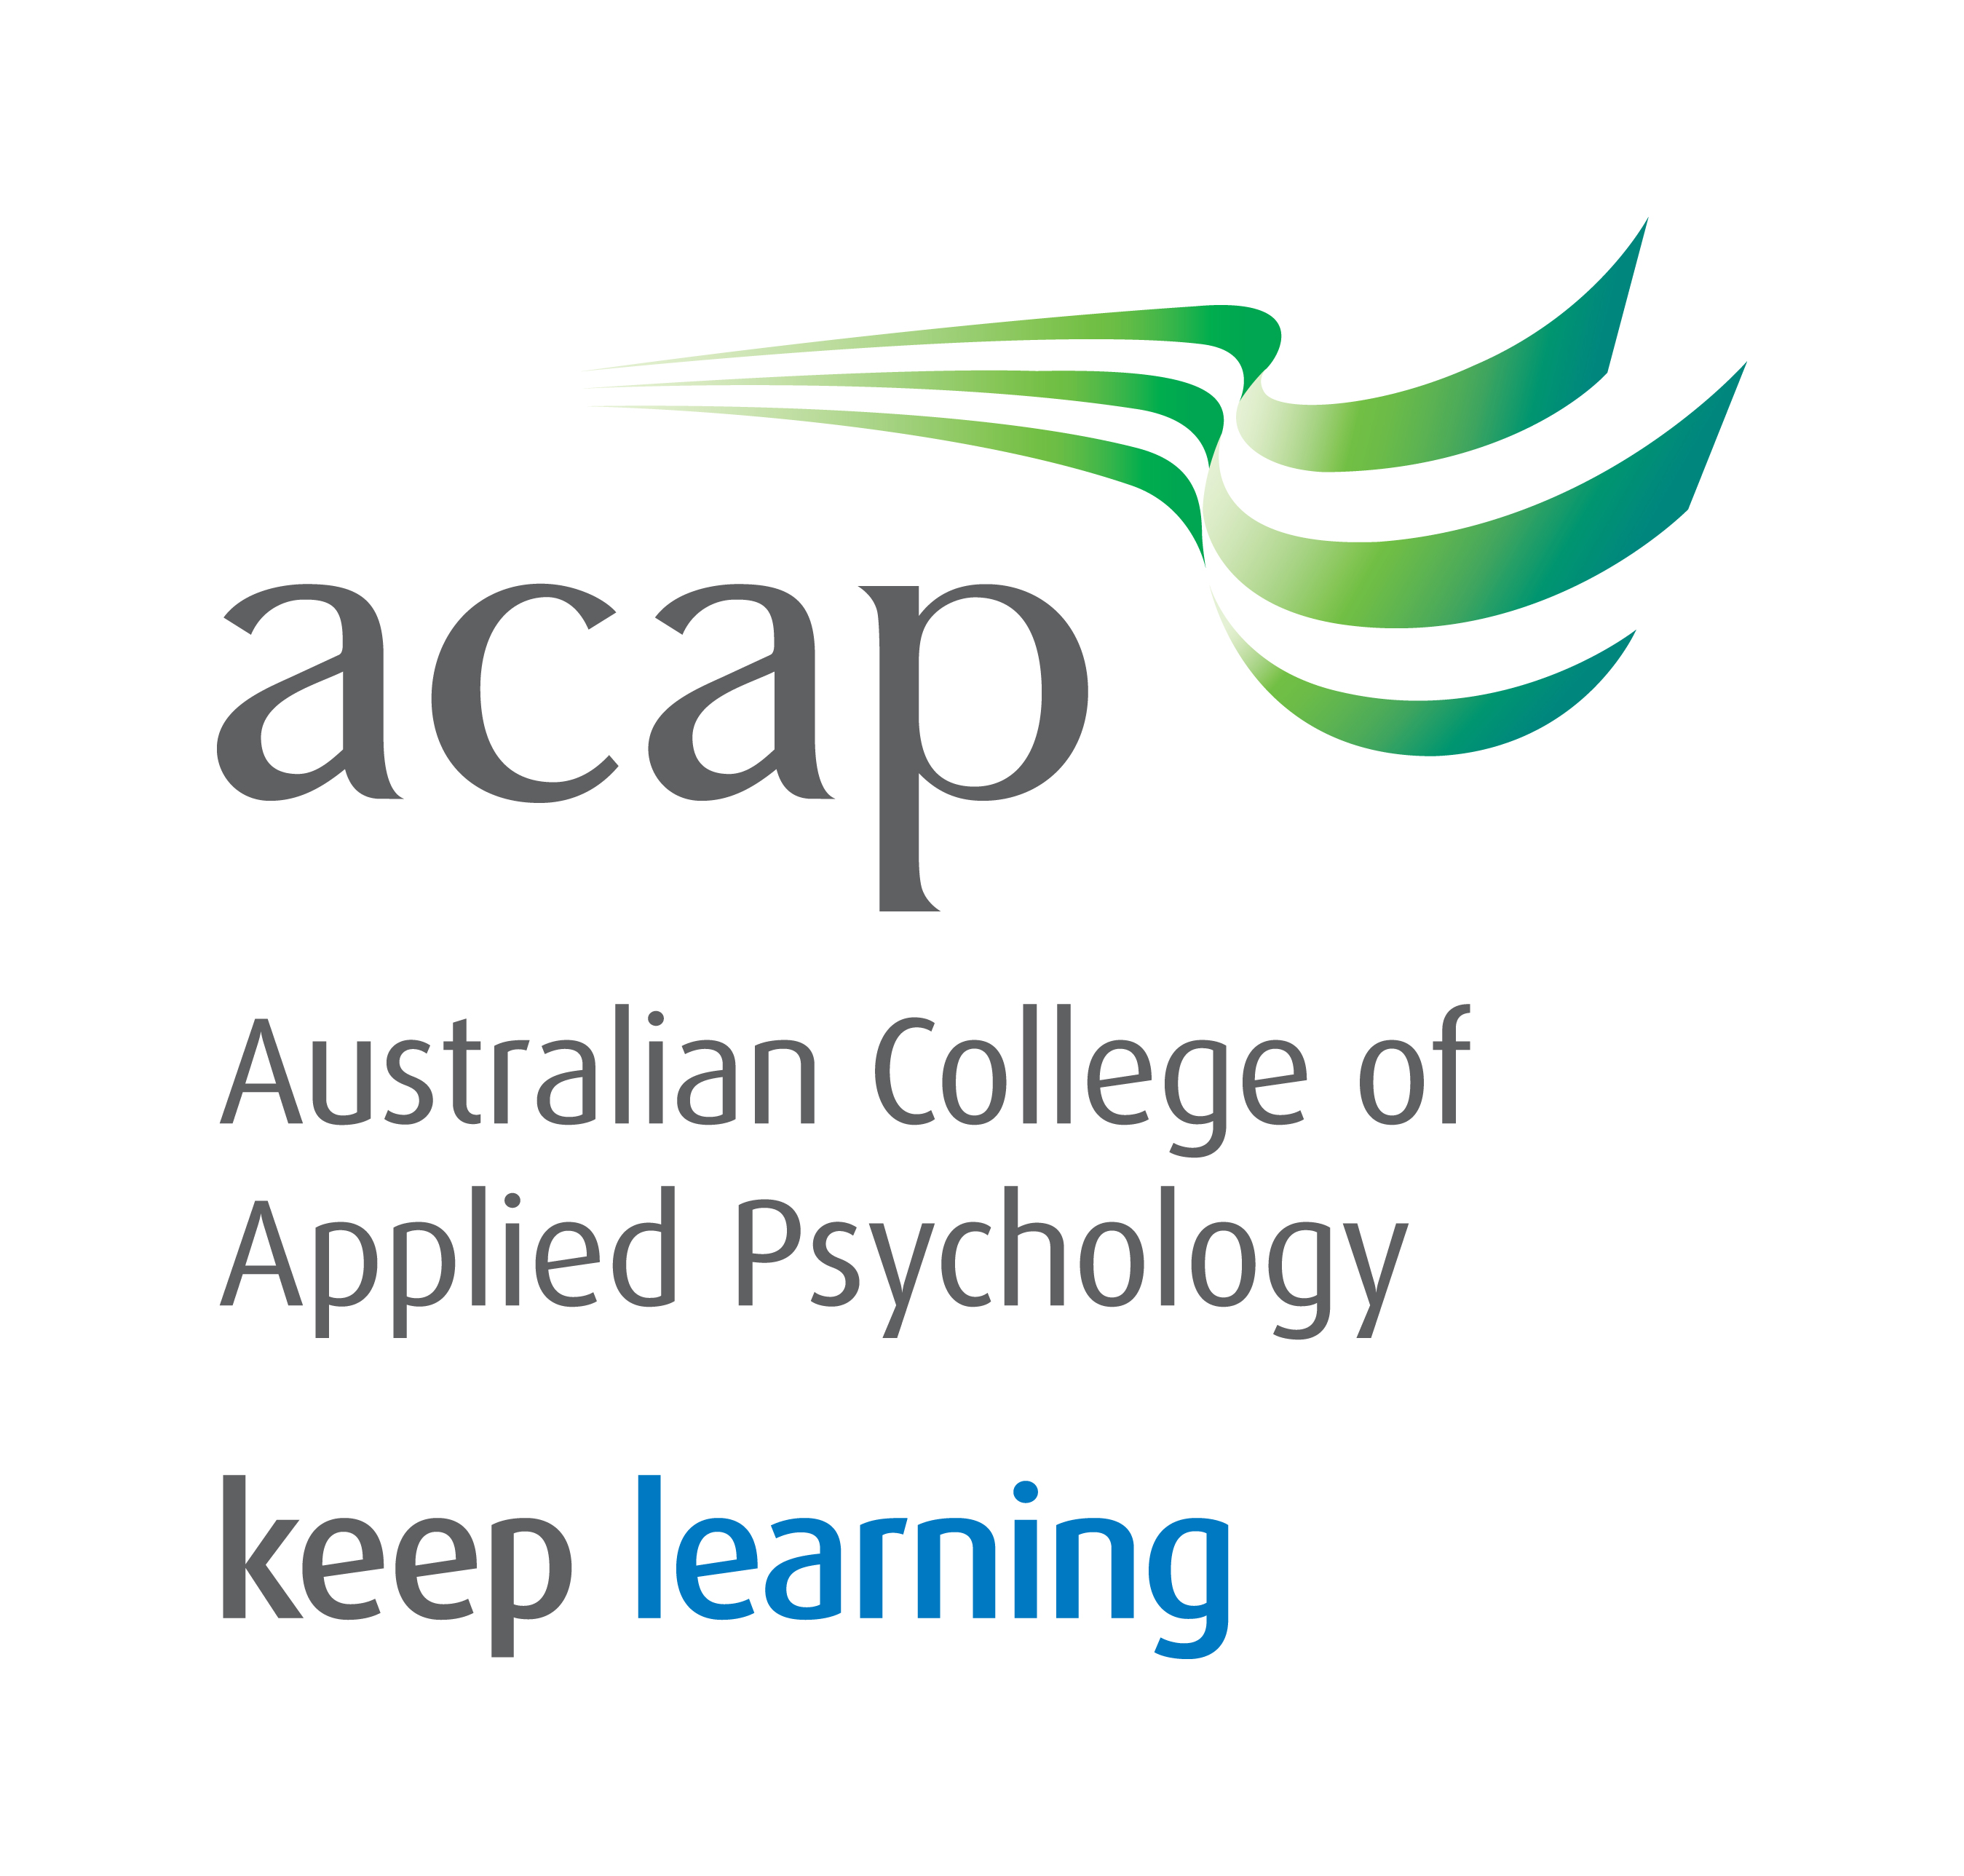 ACAP_Logo_Name_KeepLearning_StackedVersion_RGB.jpg